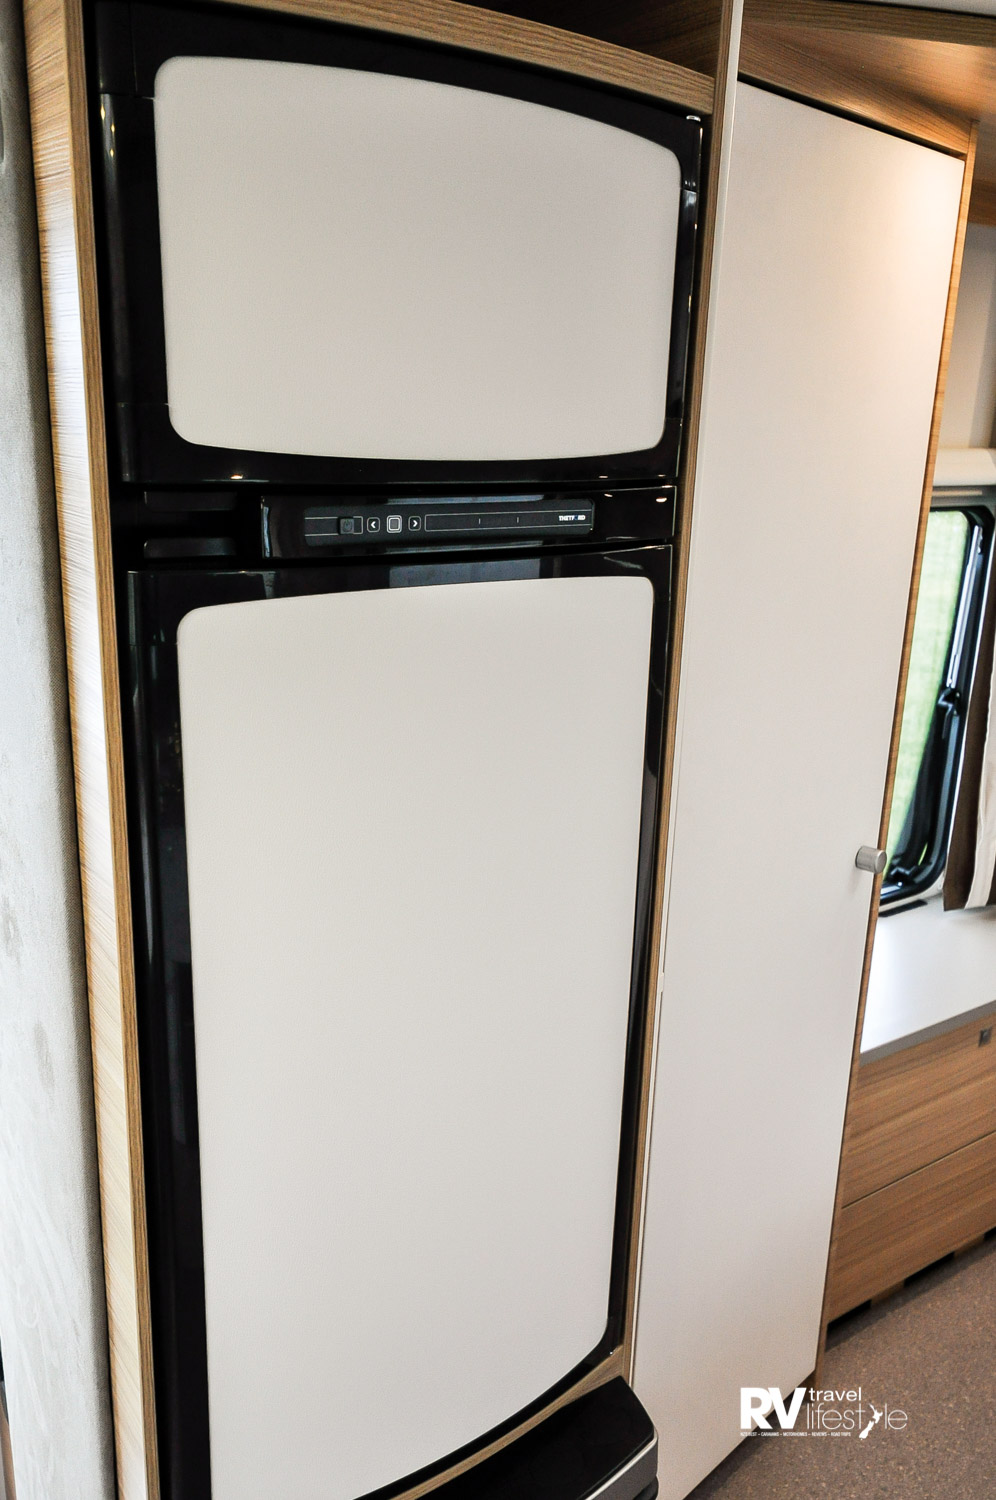 Large 175L three-way auto fridge/freezer unit, with white exterior doors to match the interior finishing